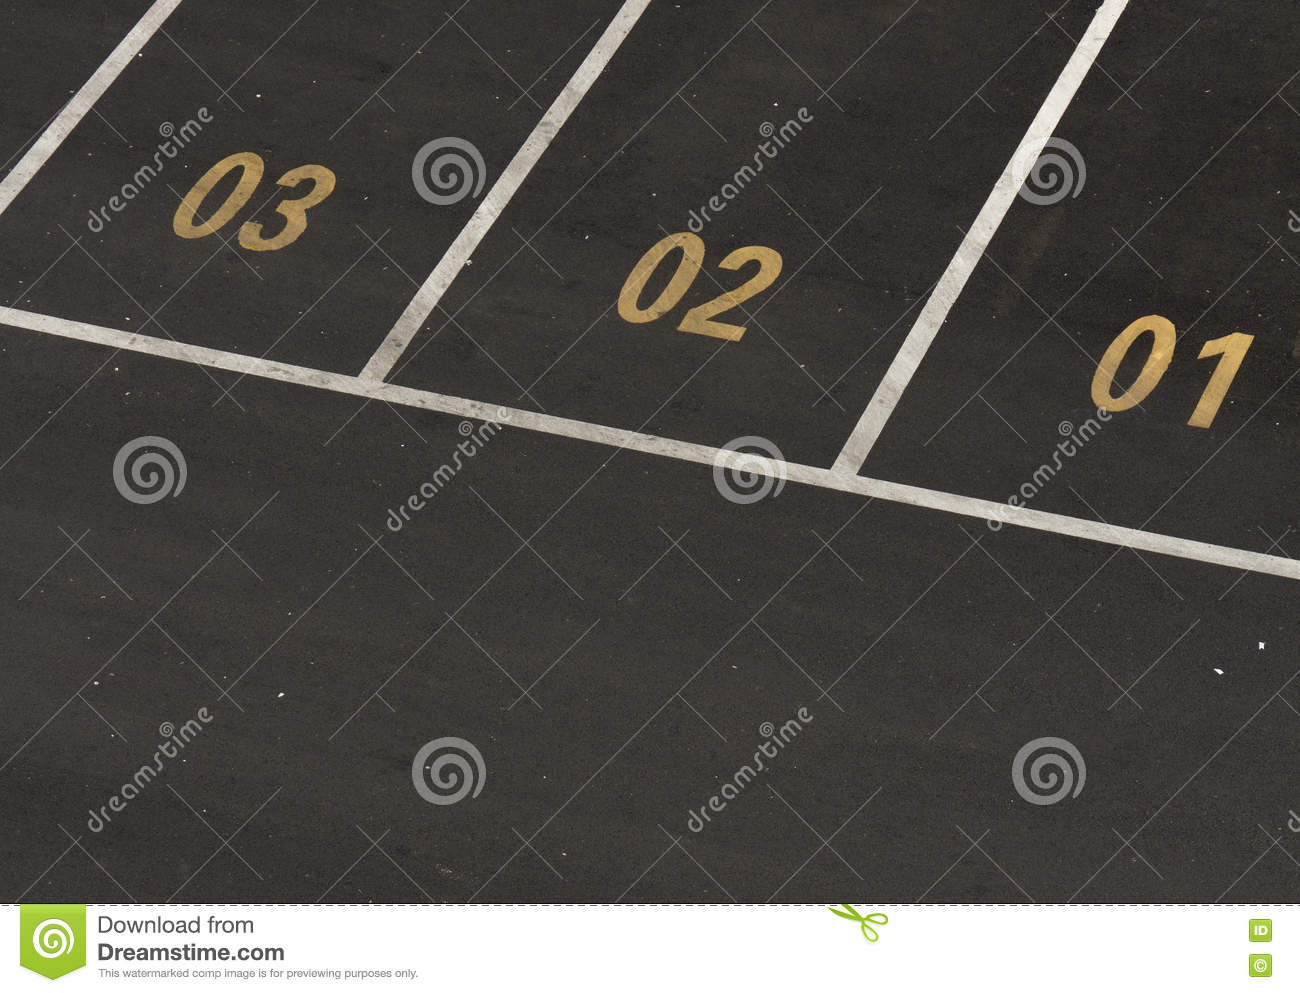 Car parking lot with numbers